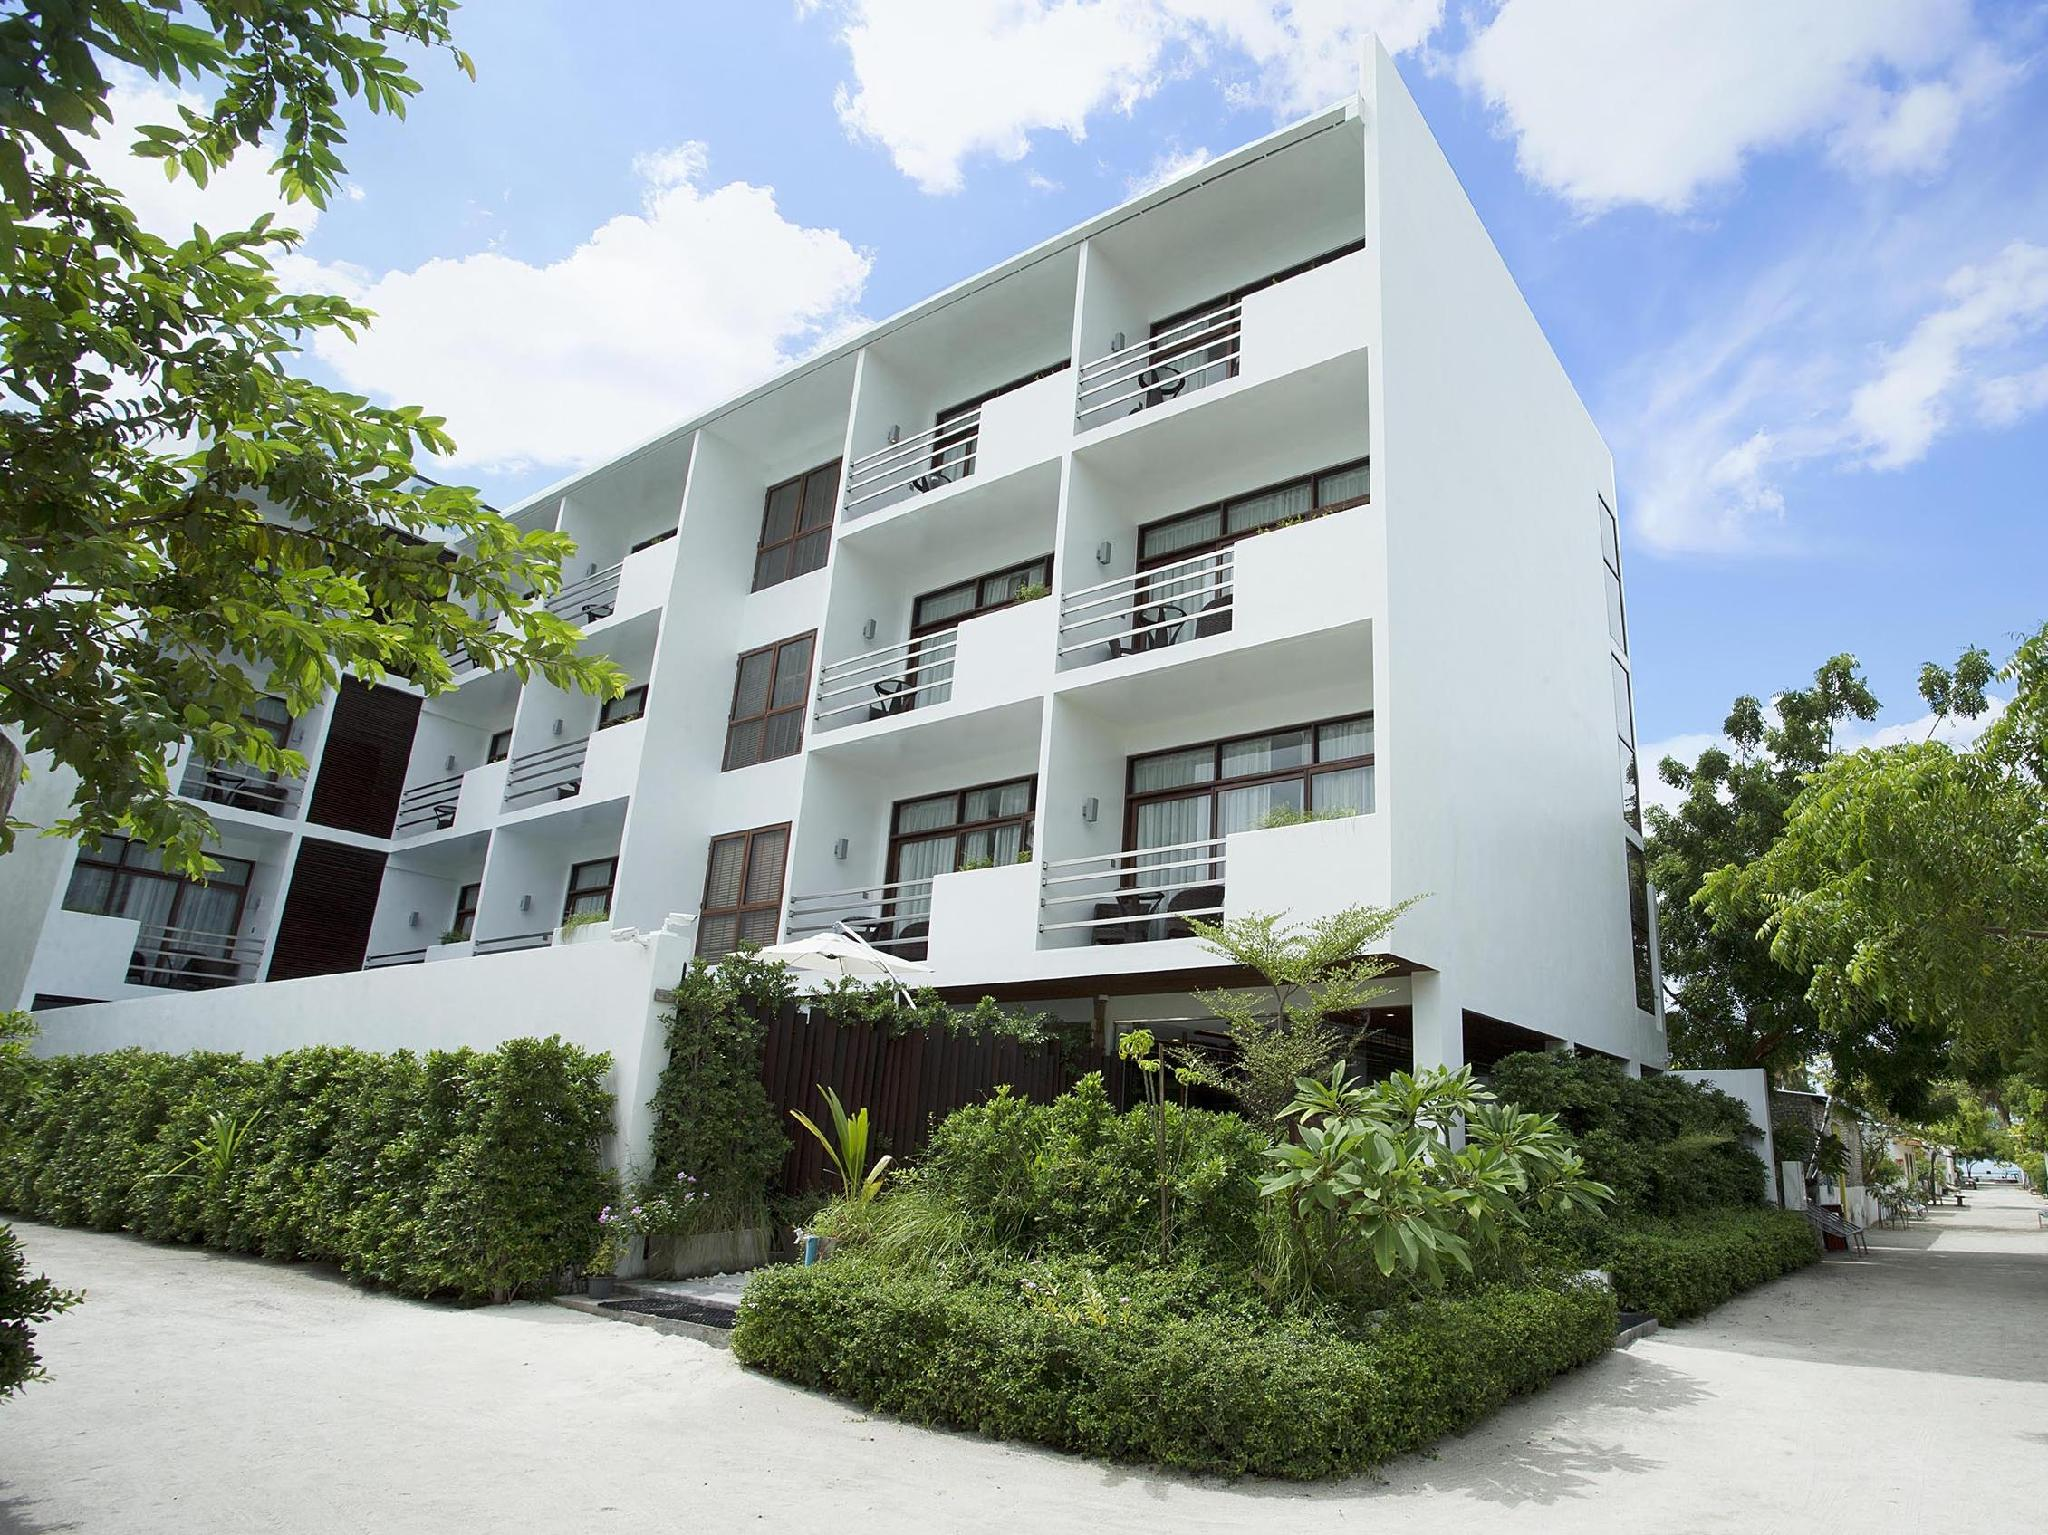 Hotel Plumeria Boutique Guest House 3 , Maldives overview, special features and reviews